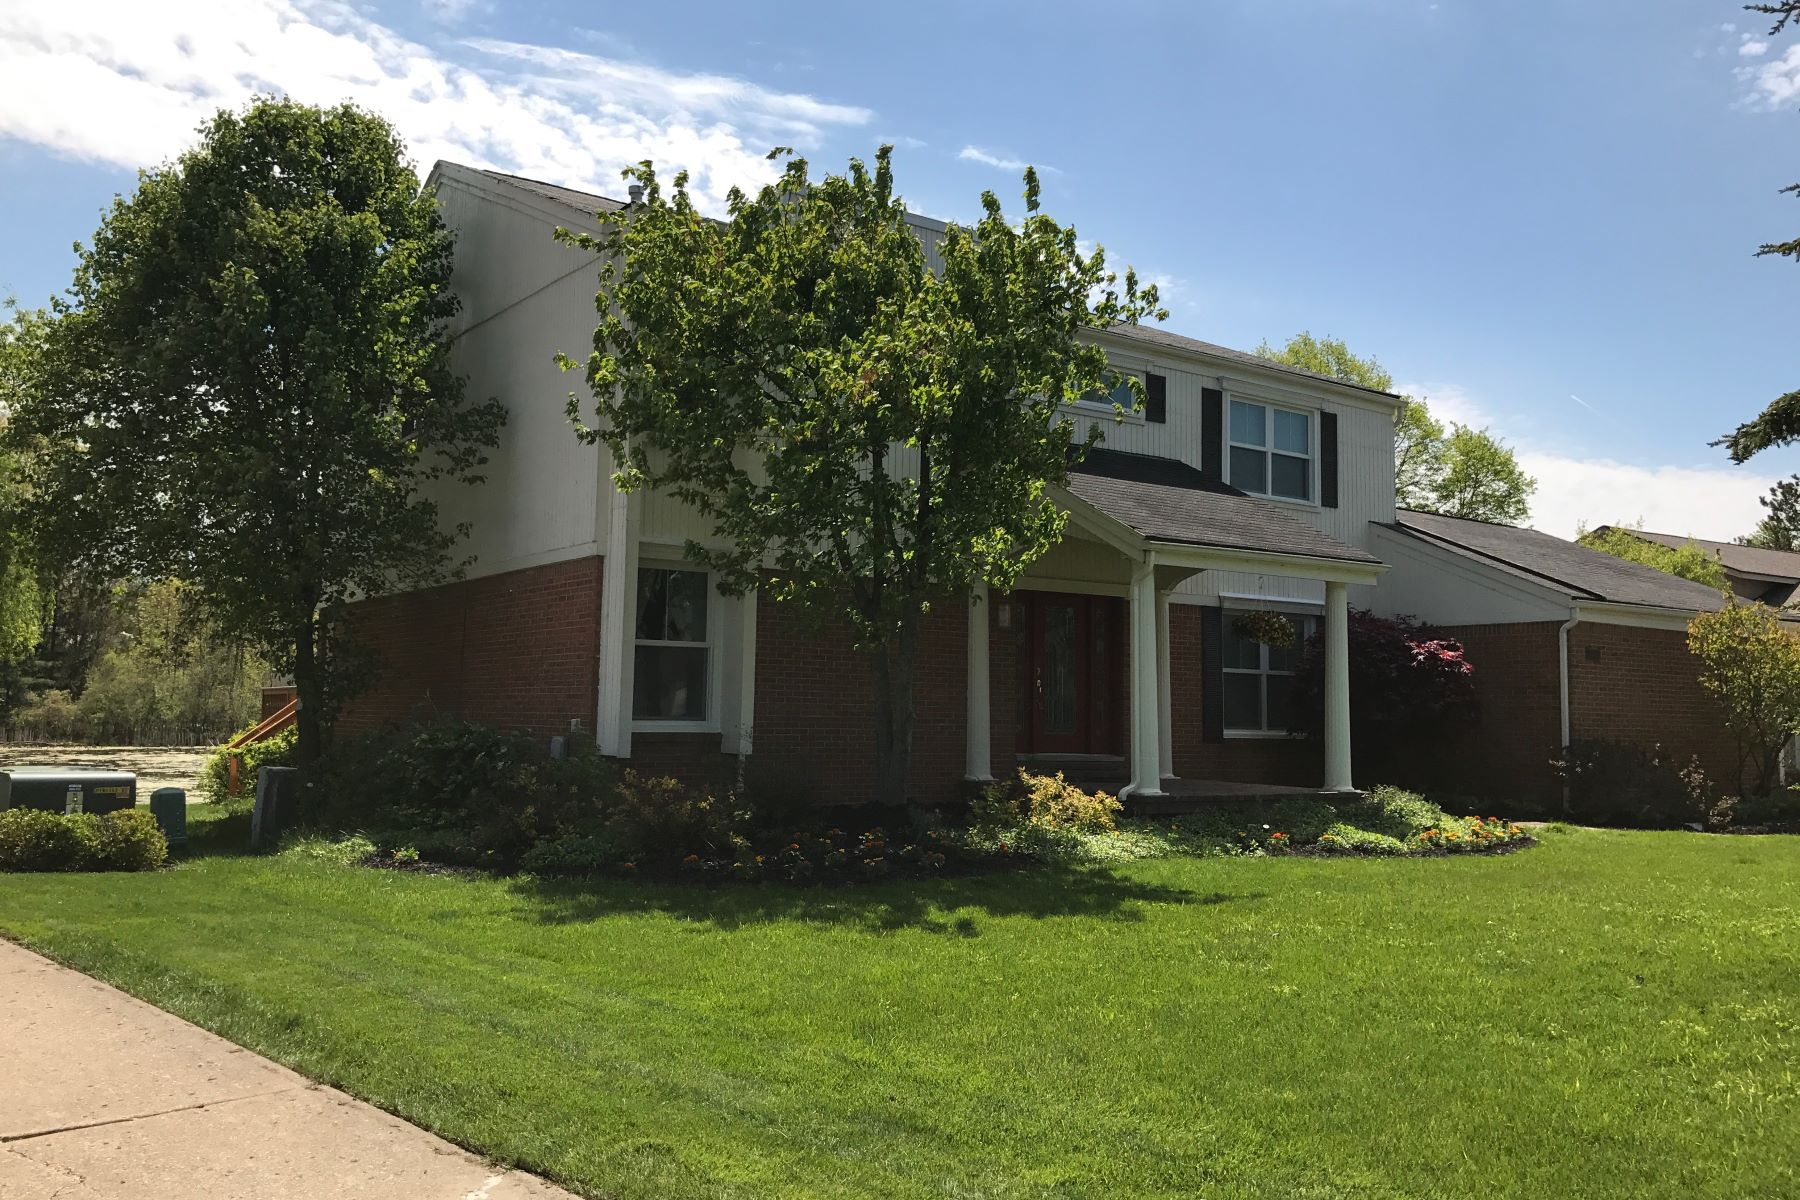 Single Family Home for Sale at West Bloomfield Township 2957 Brentwood Road West Bloomfield, Michigan, 48323 United States